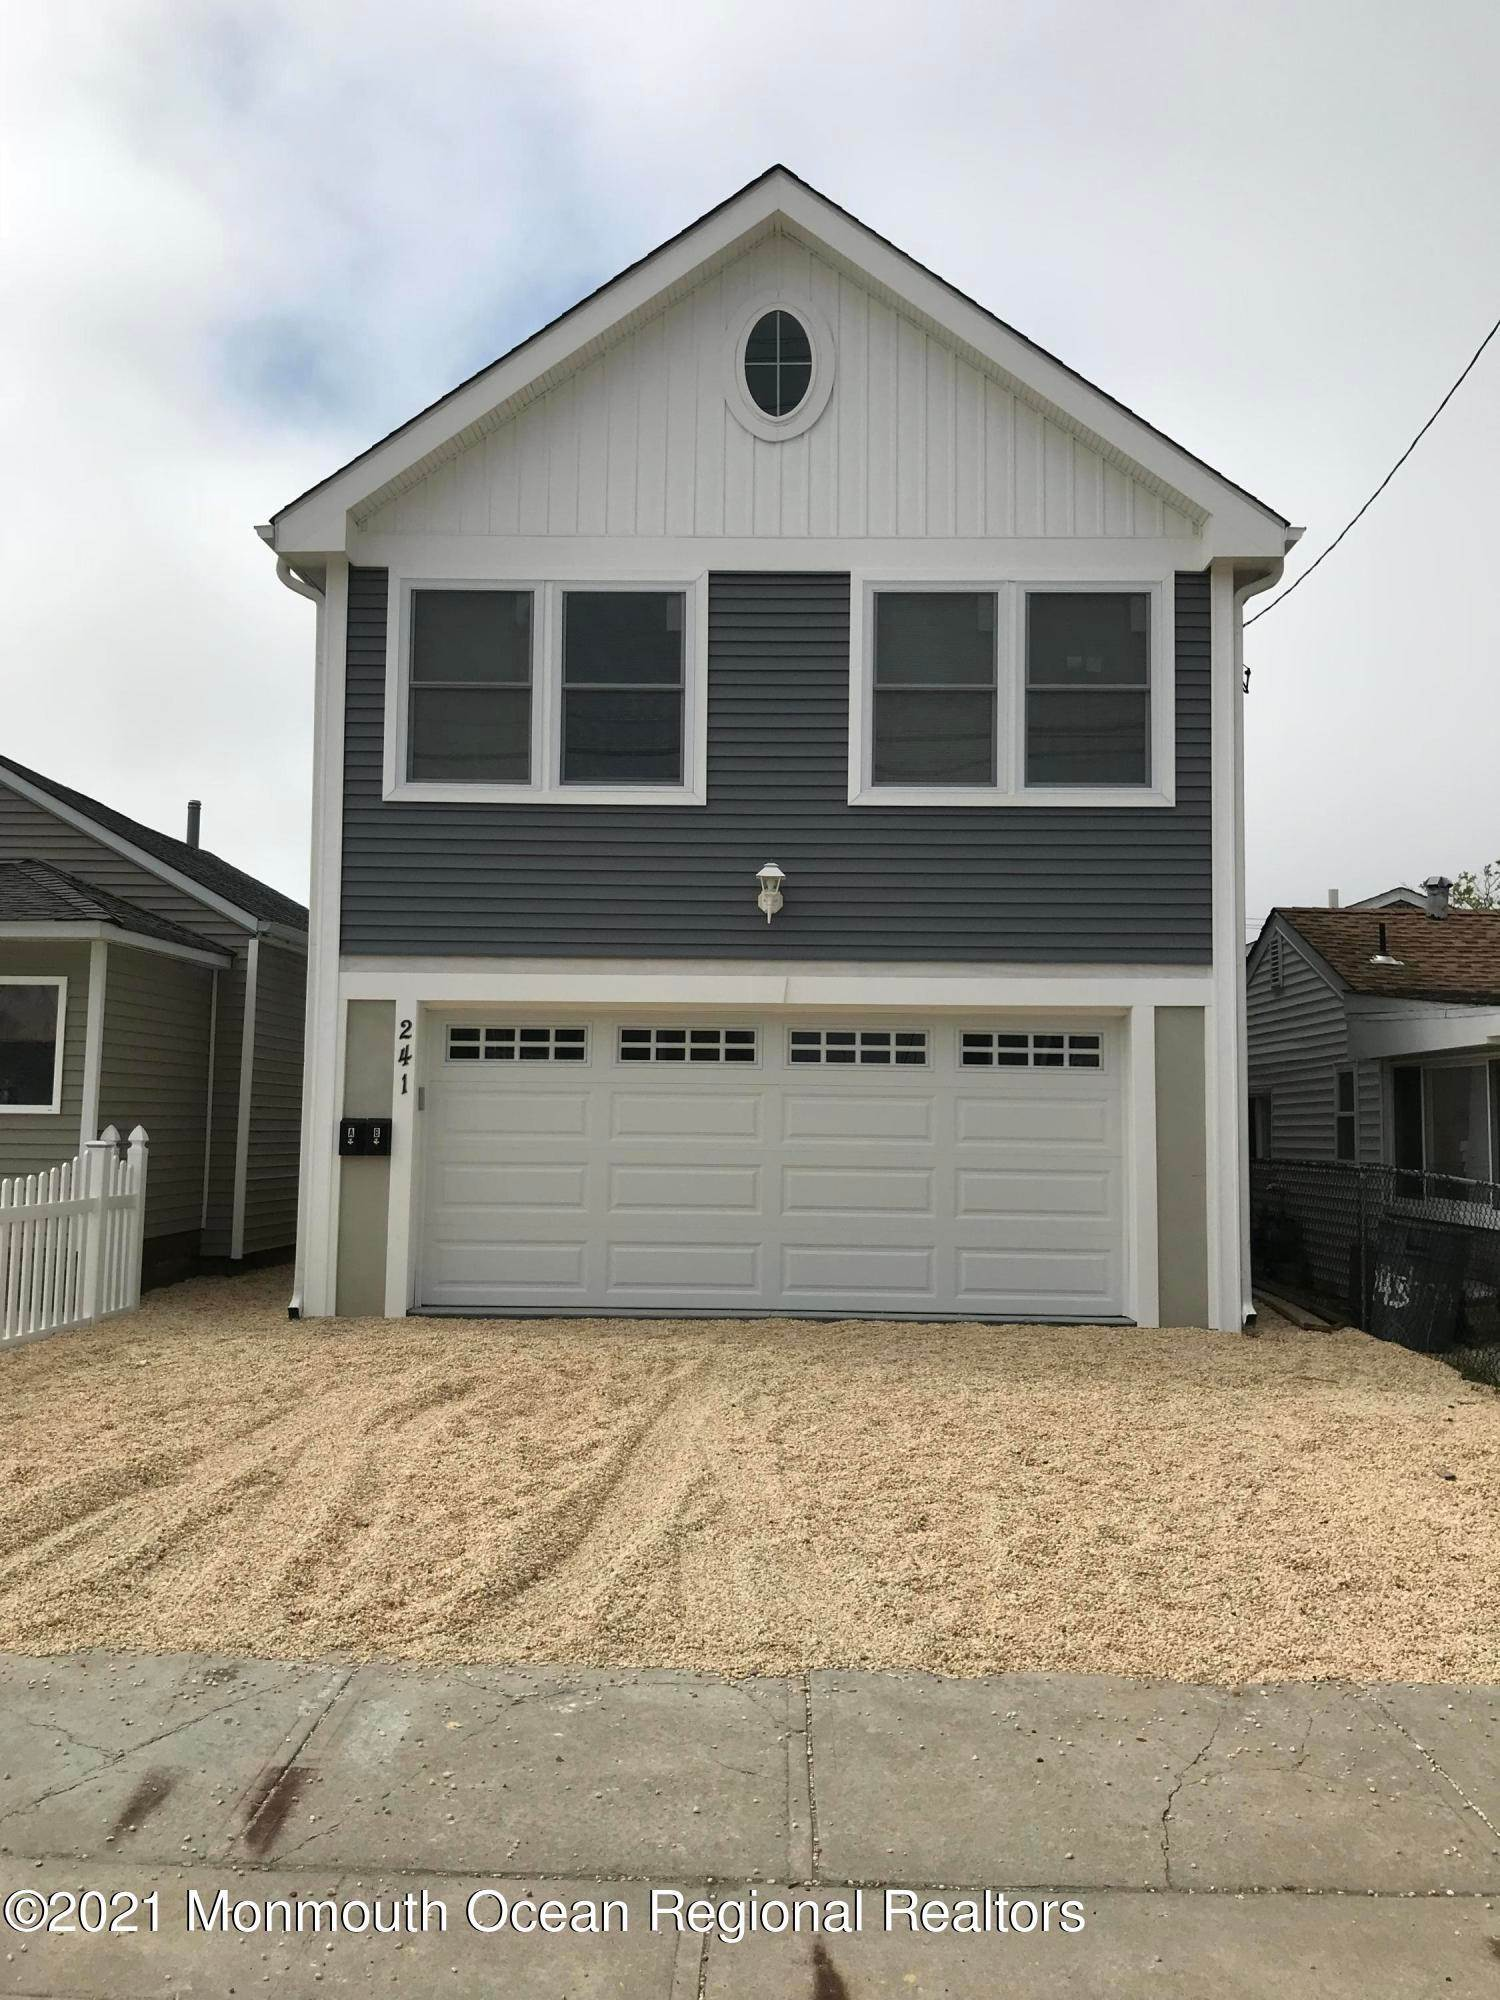 Single Family Homes for Sale at 241 Hiering Avenue Seaside Heights, New Jersey 08751 United States